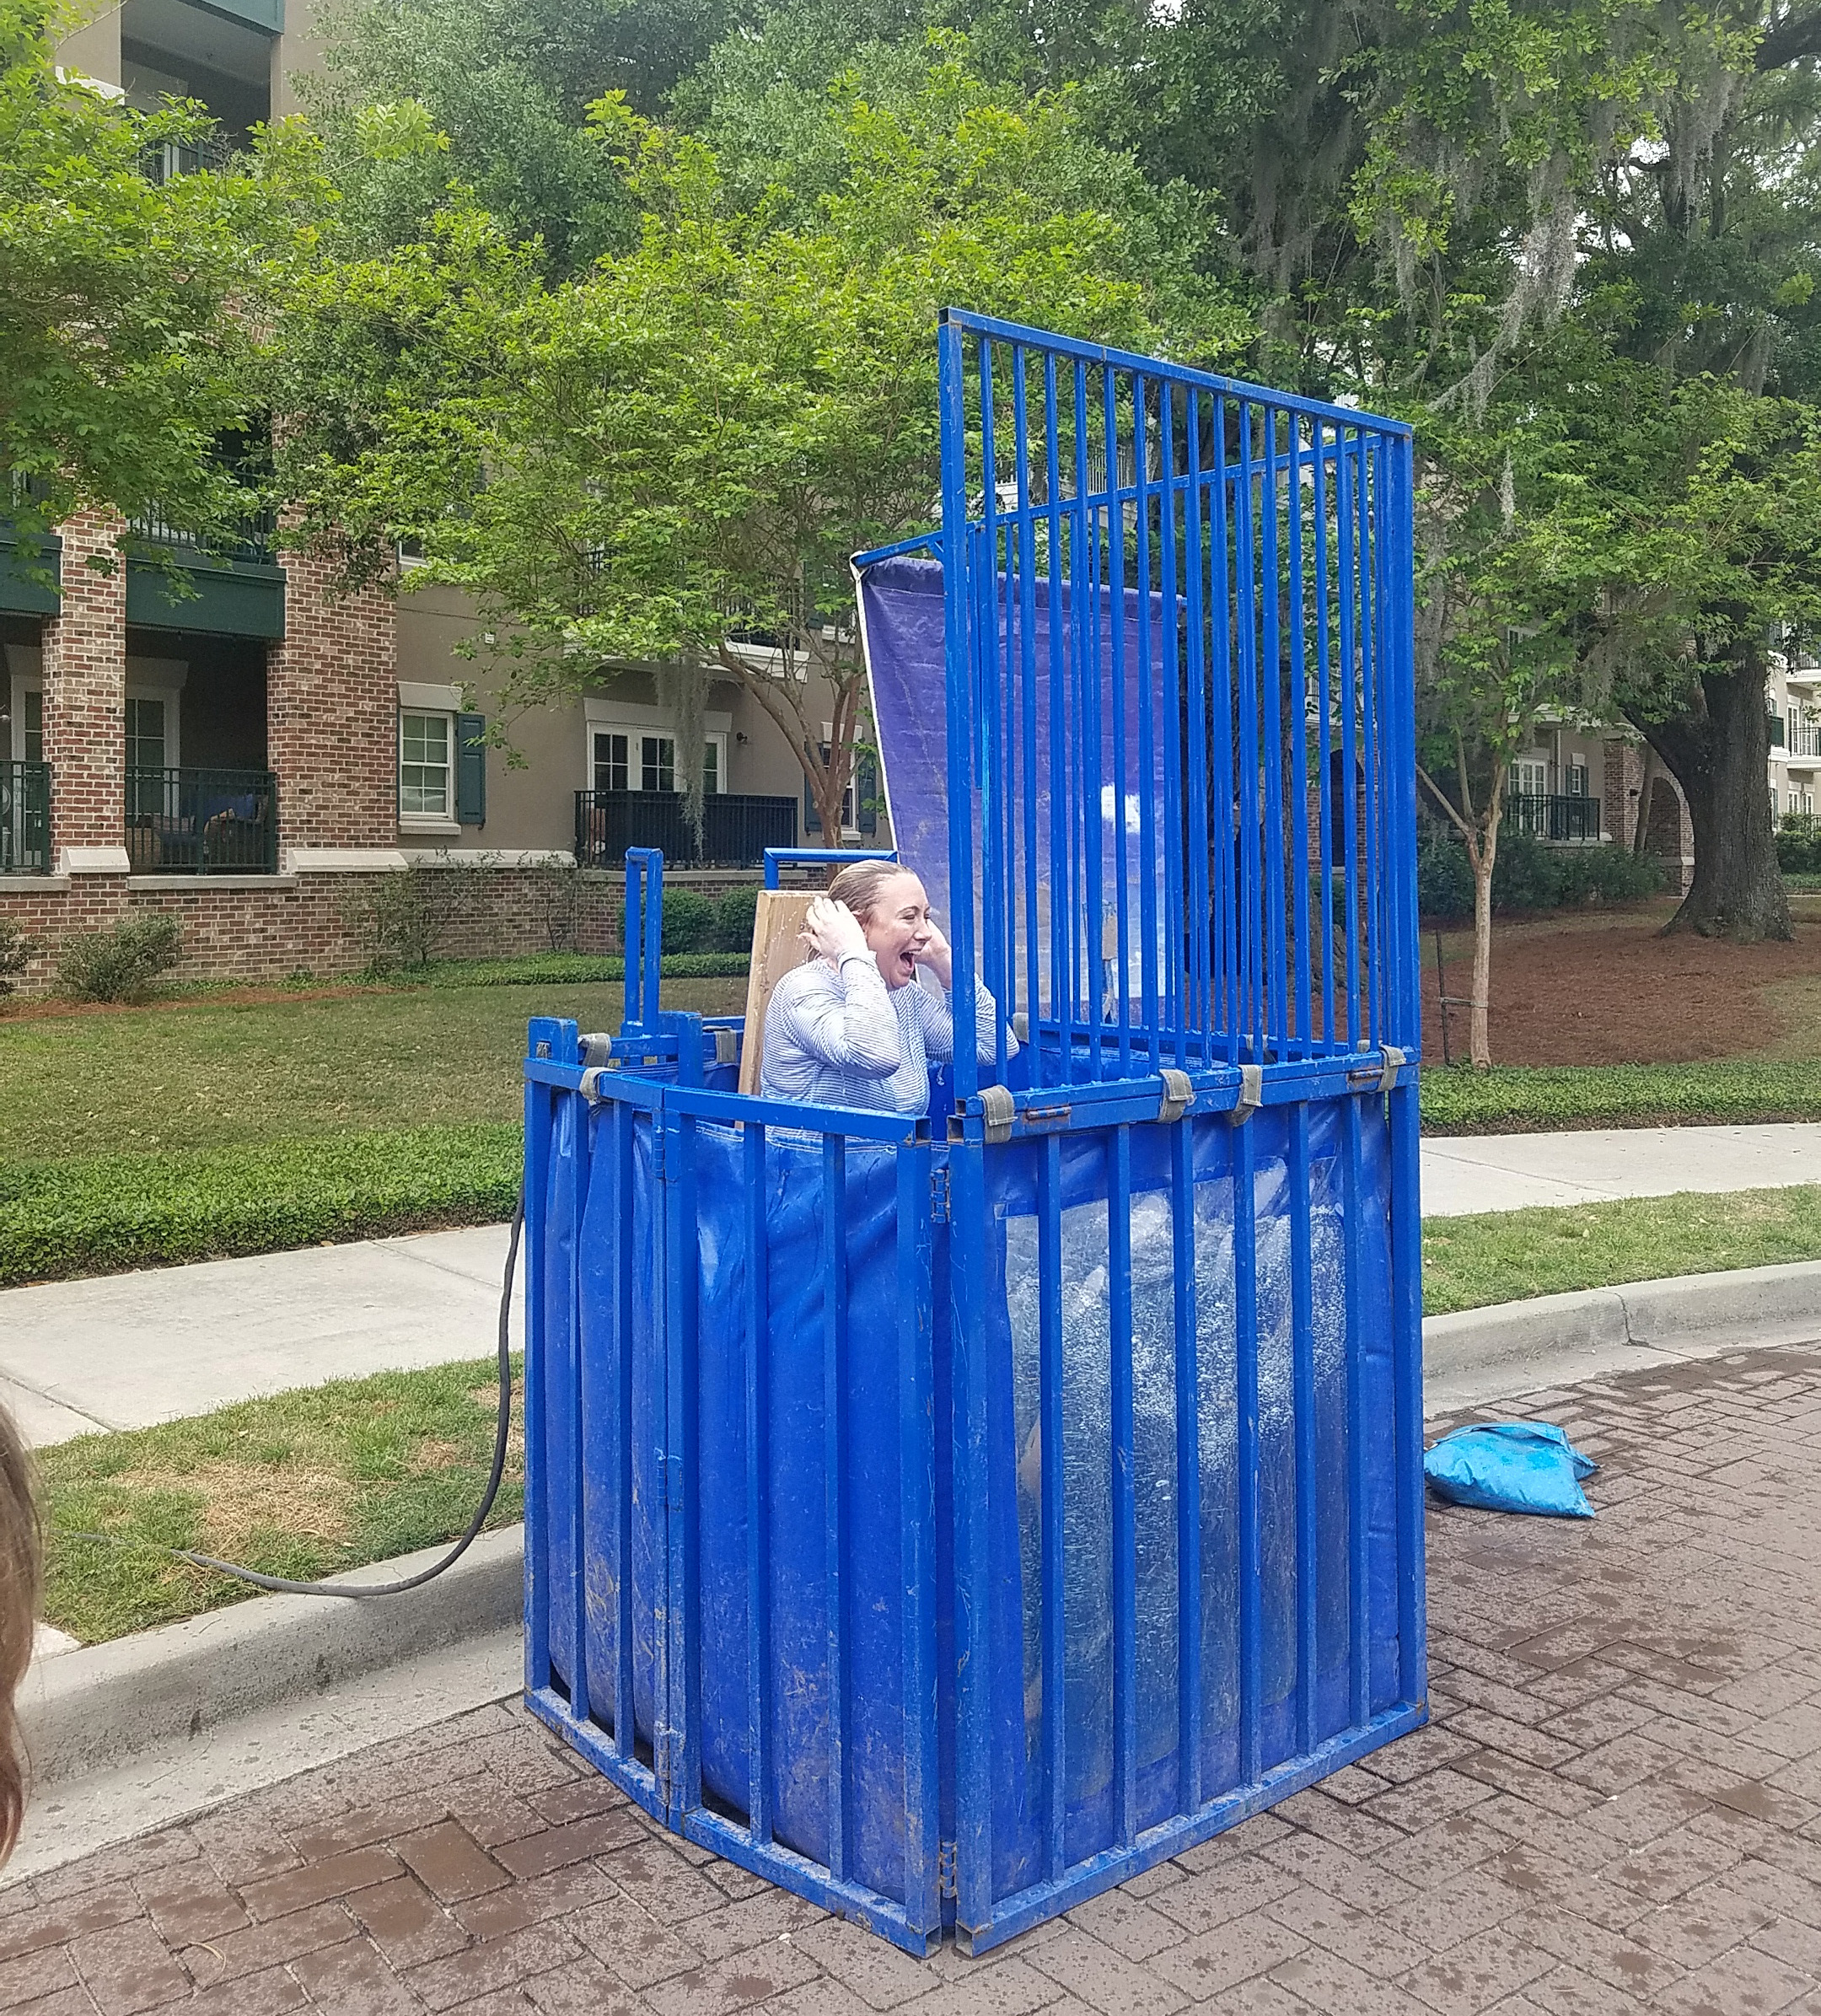 Suzanne Detar - Lindsey Miller took the plunge to support Team Rhys. Here she pops up after getting dunked by her daughter.